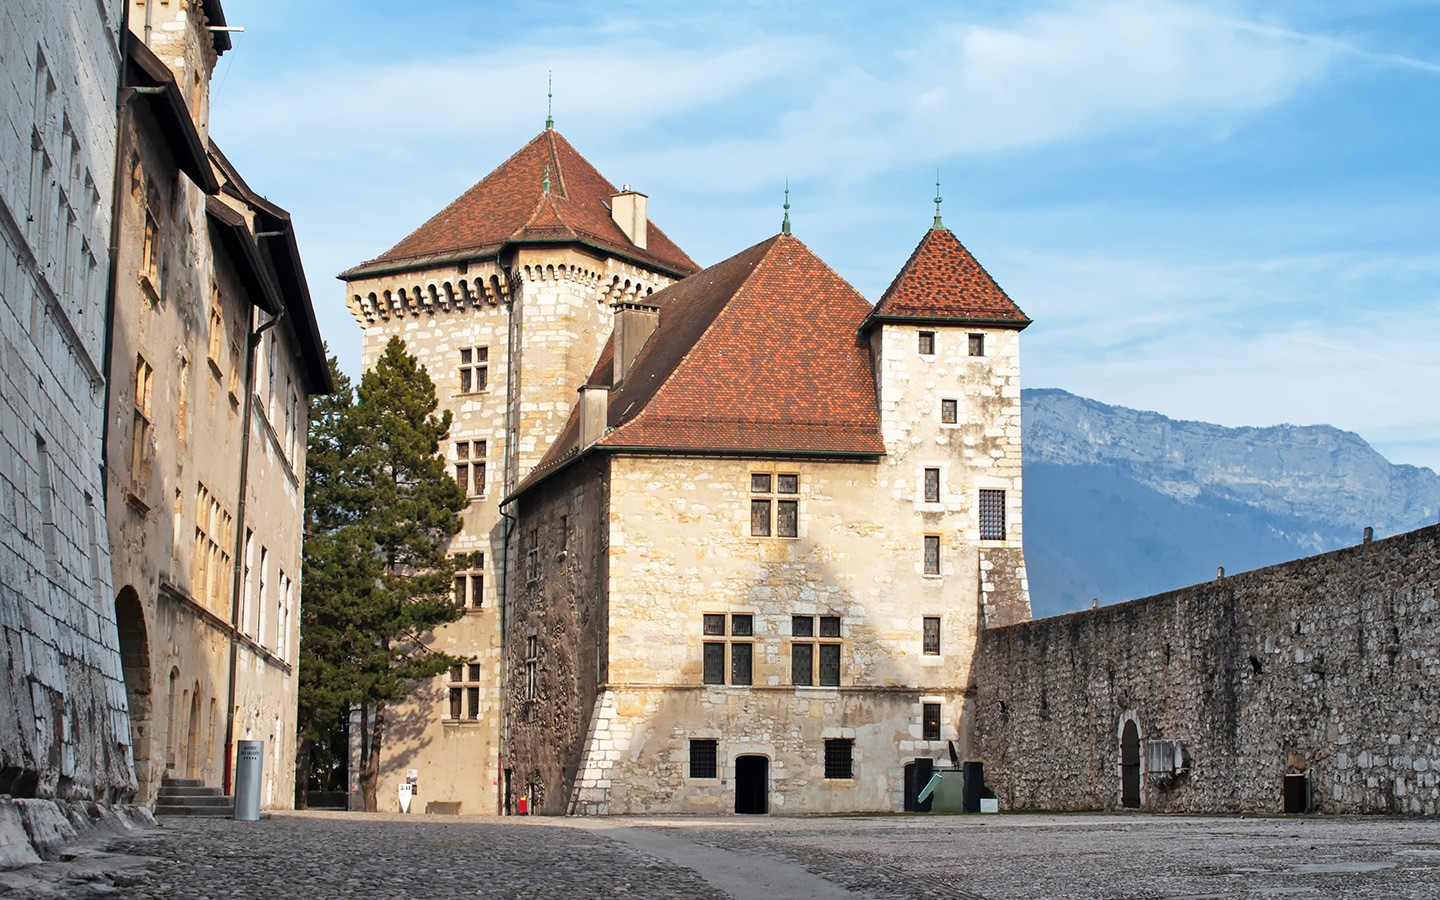 The Château d'Annecy, Annecy Castle in France